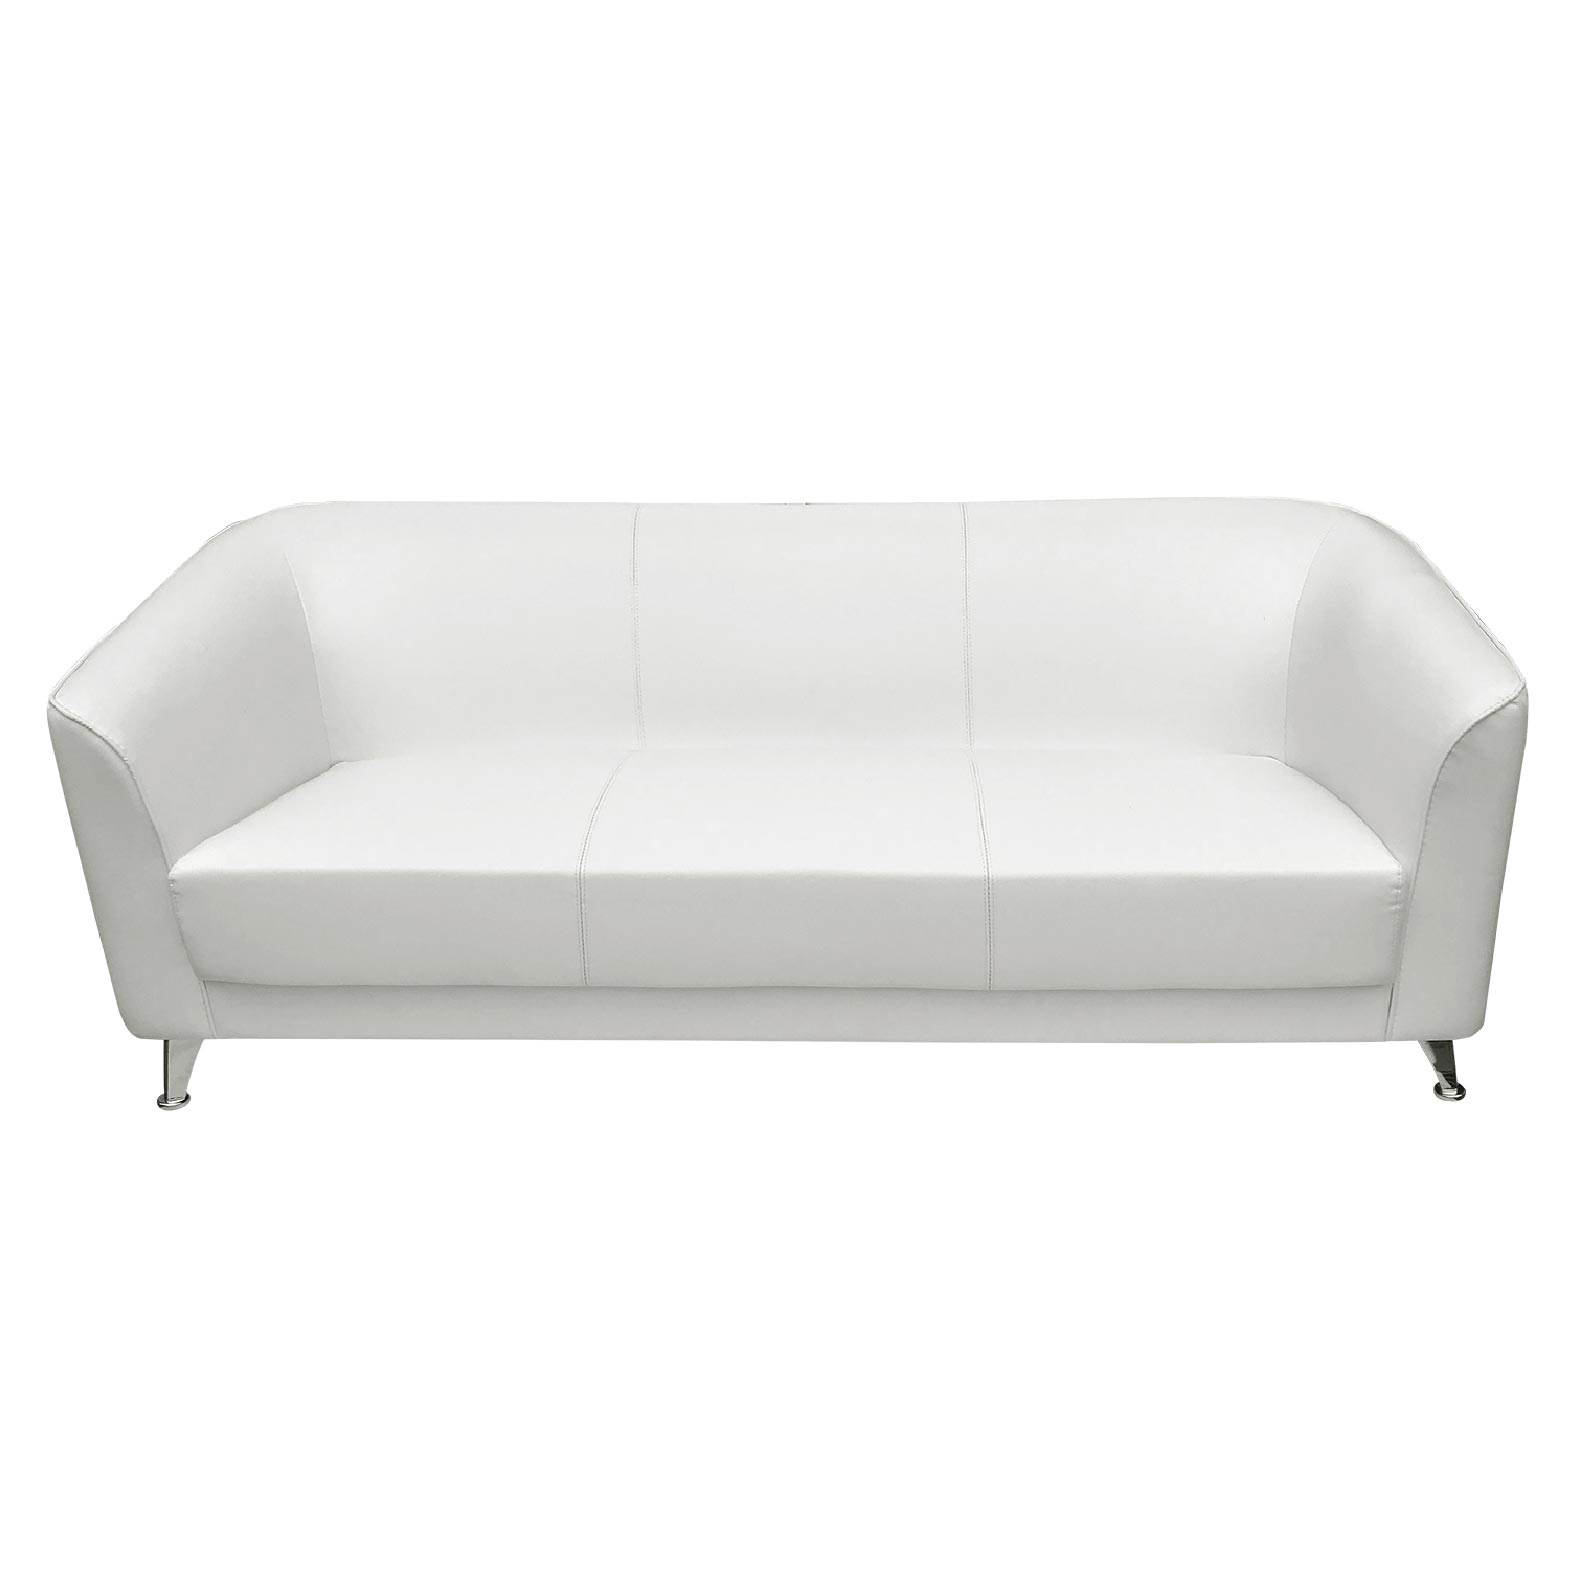 Charm sofa triple White